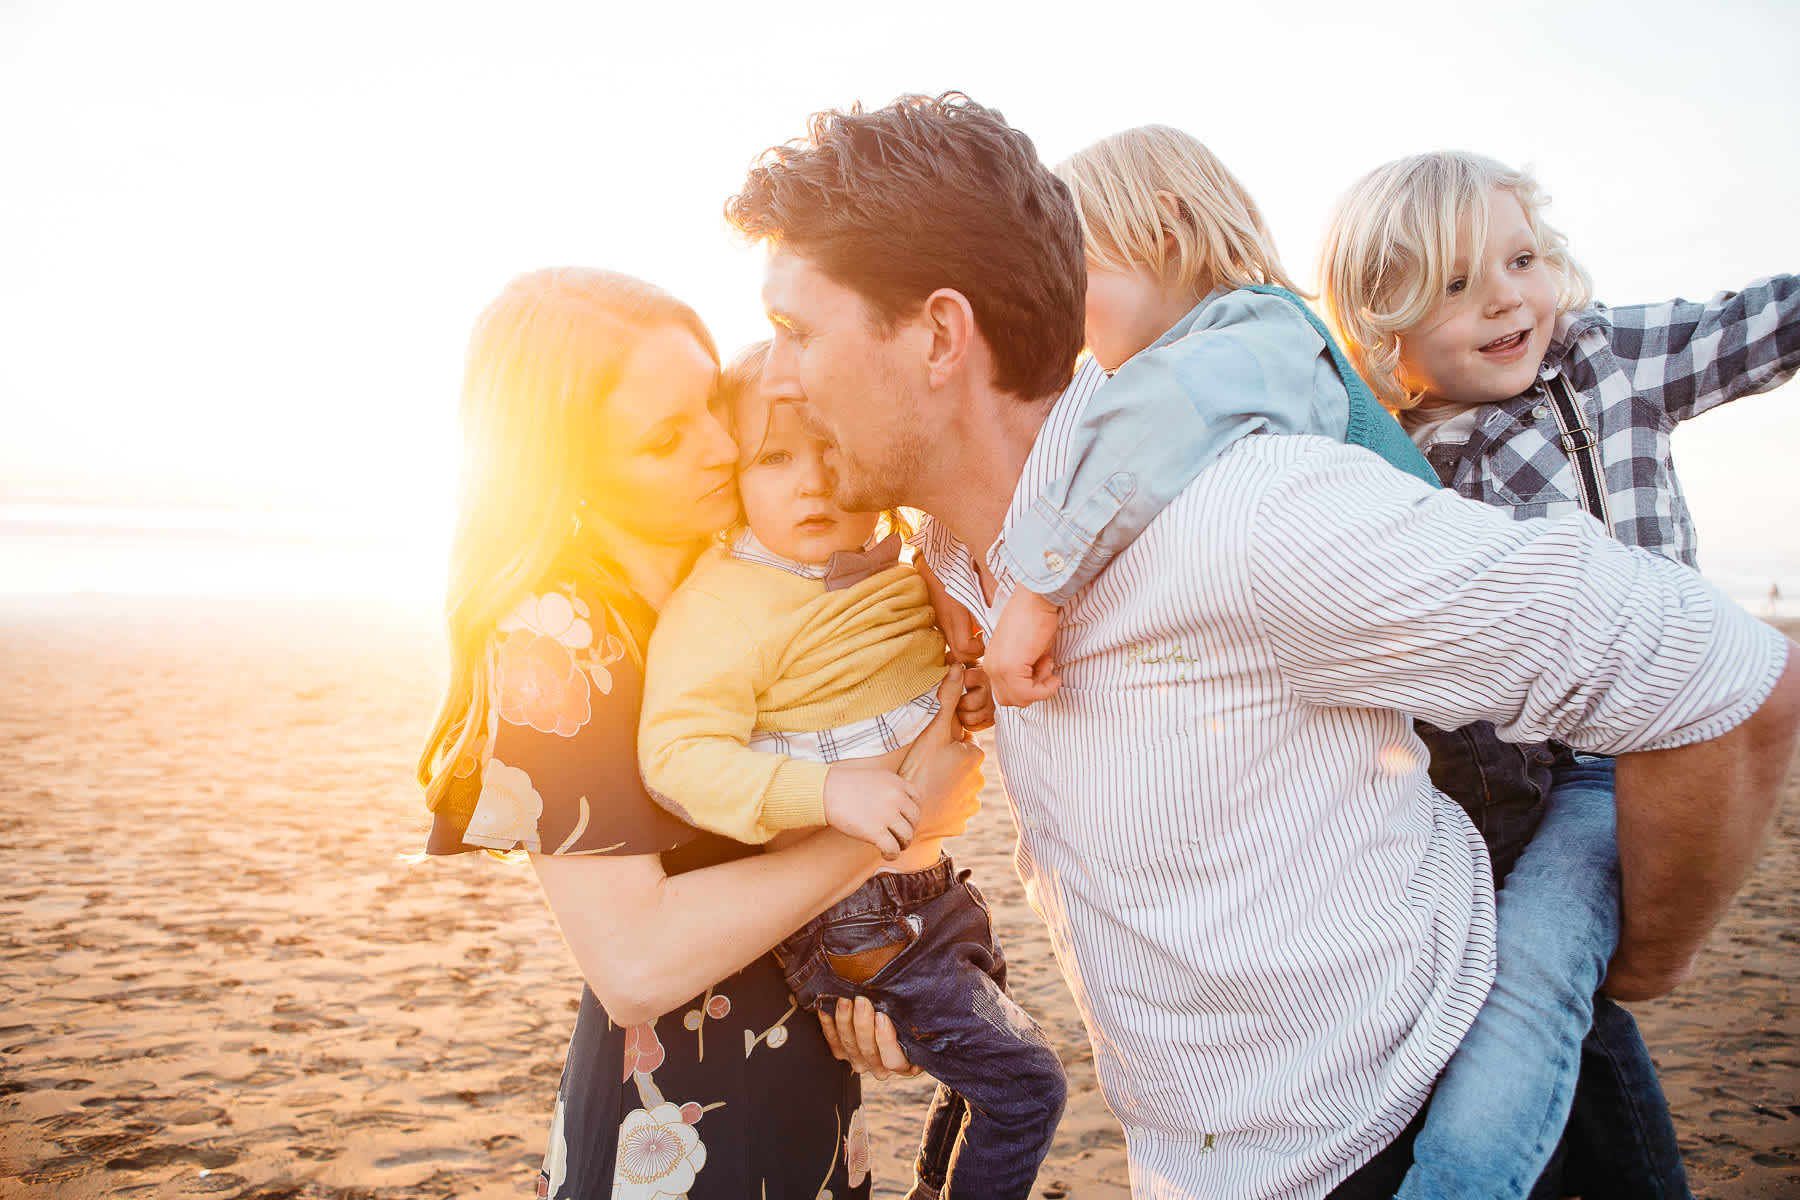 golden-light-ocean-beach-family-playing-lifestyle-session